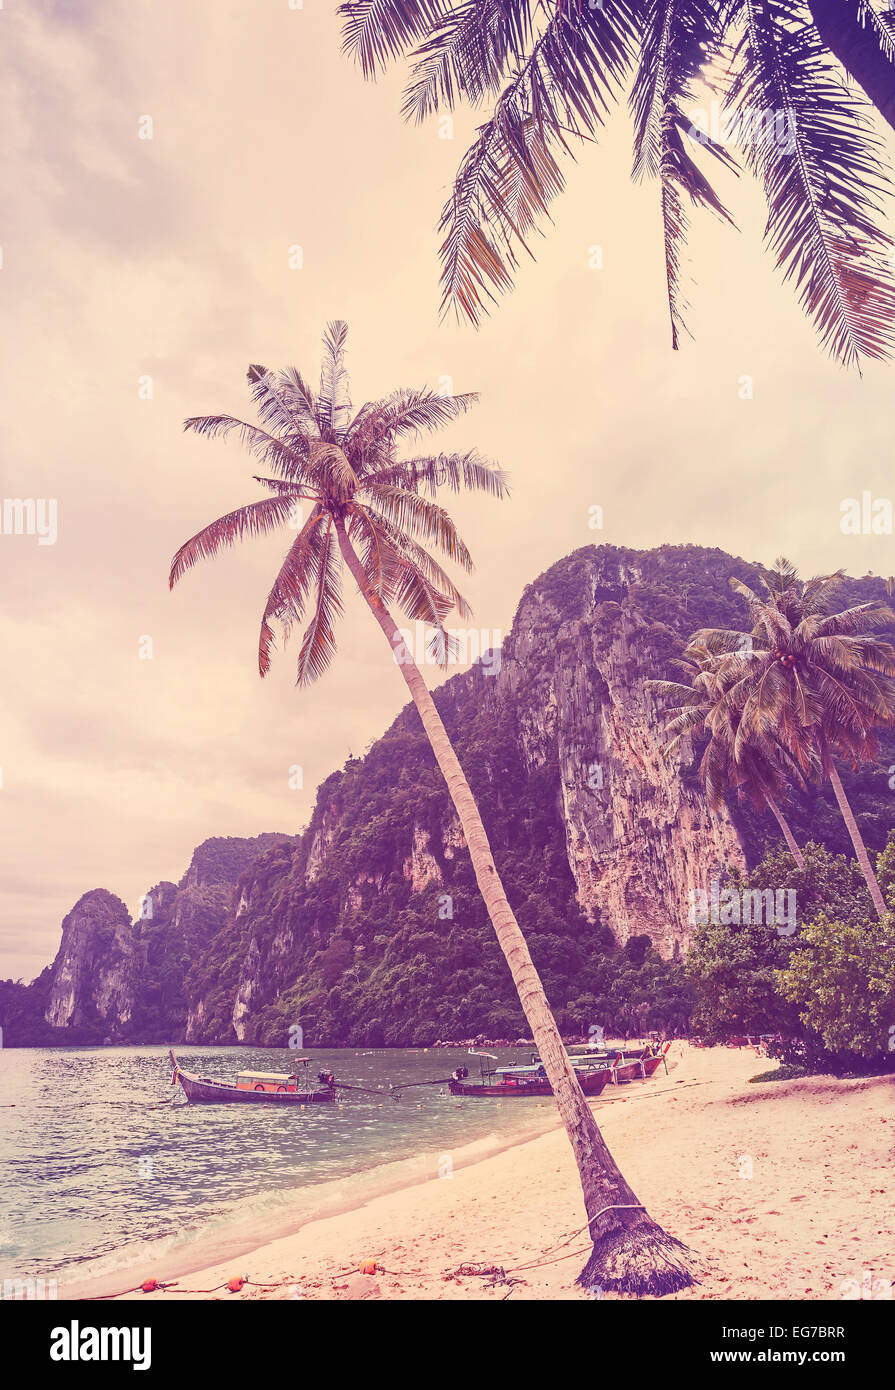 Vintage retro stylized tropical beach with palm trees. - Stock Image